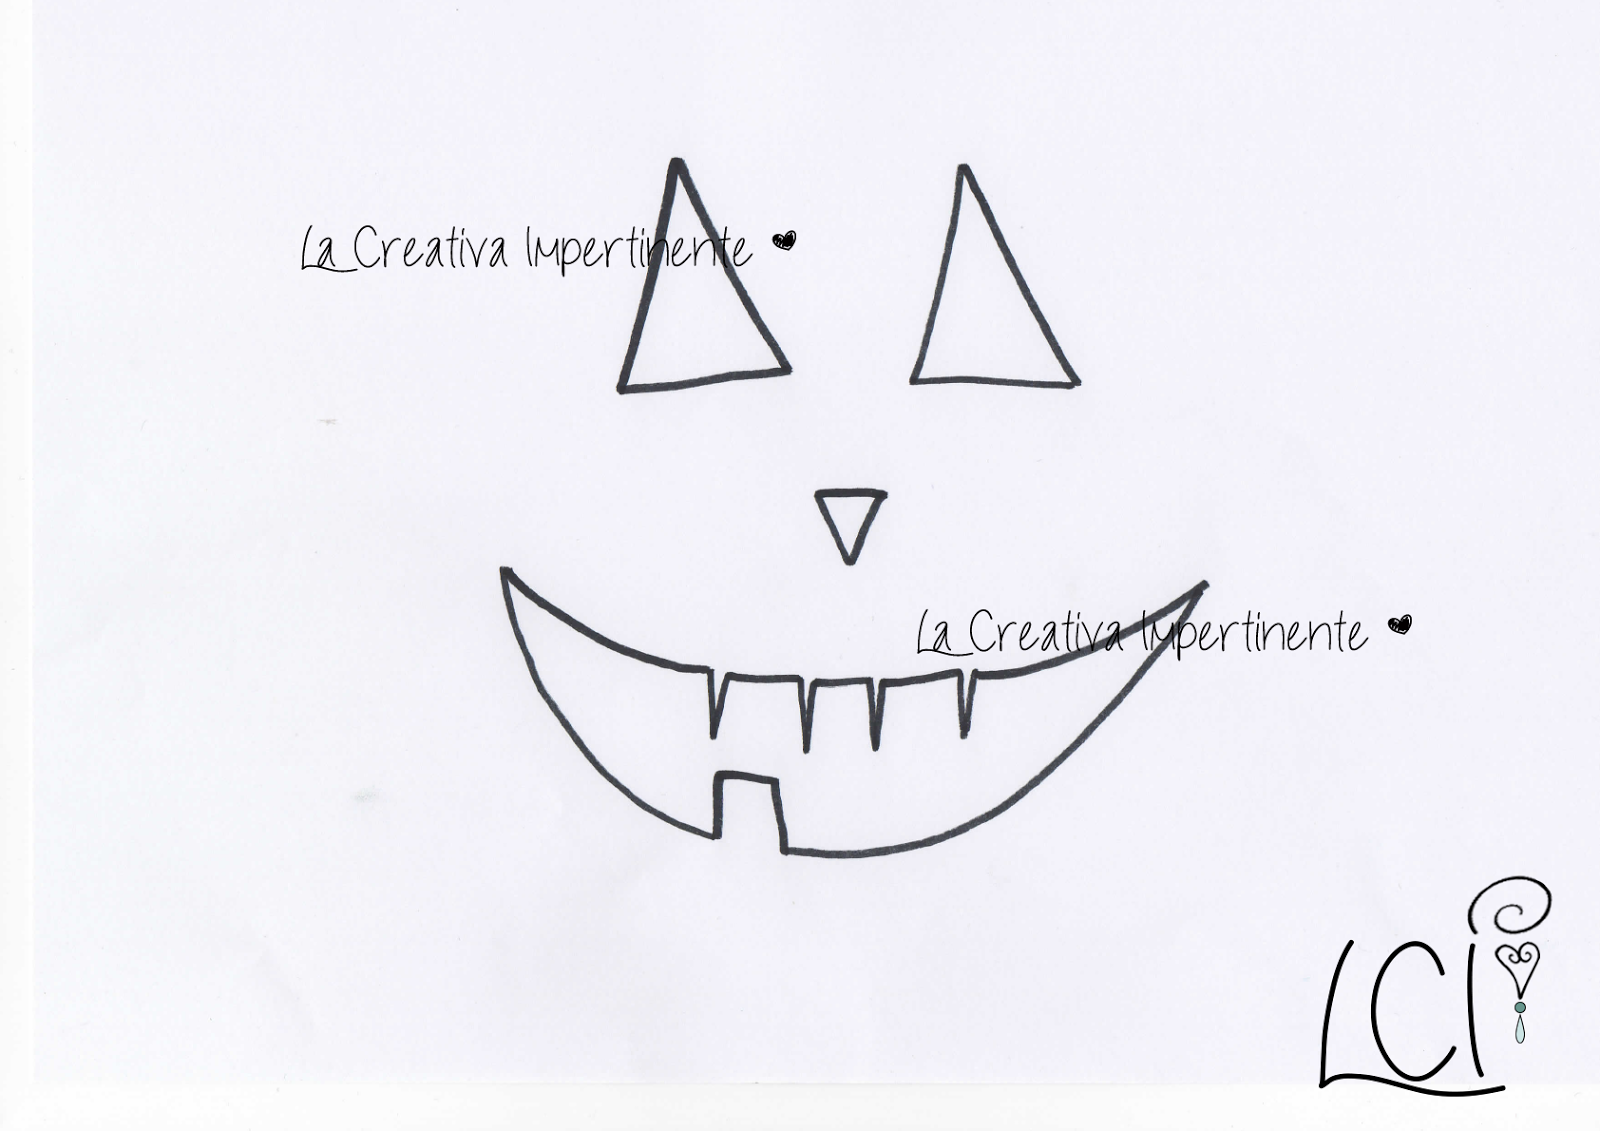 La Creativa Impertinente Idea Halloween